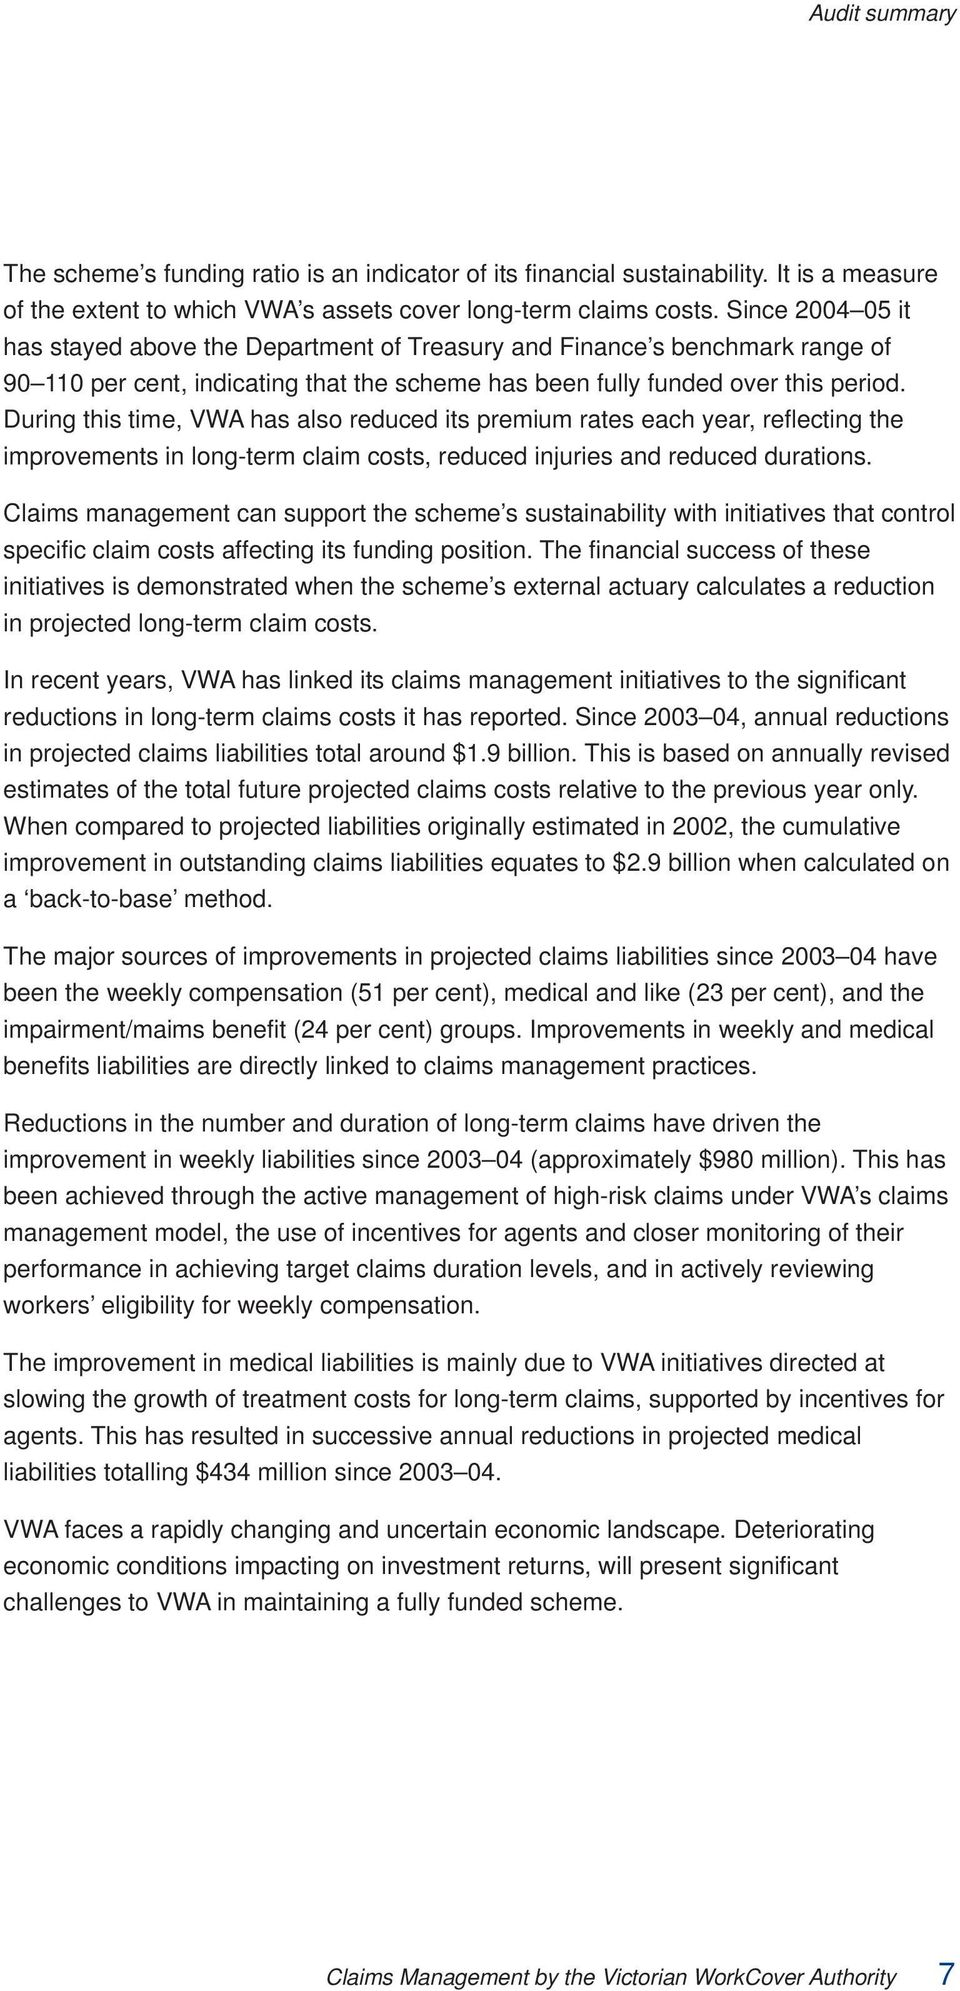 During this time, VWA has also reduced its premium rates each year, reflecting the improvements in long-term claim costs, reduced injuries and reduced durations.